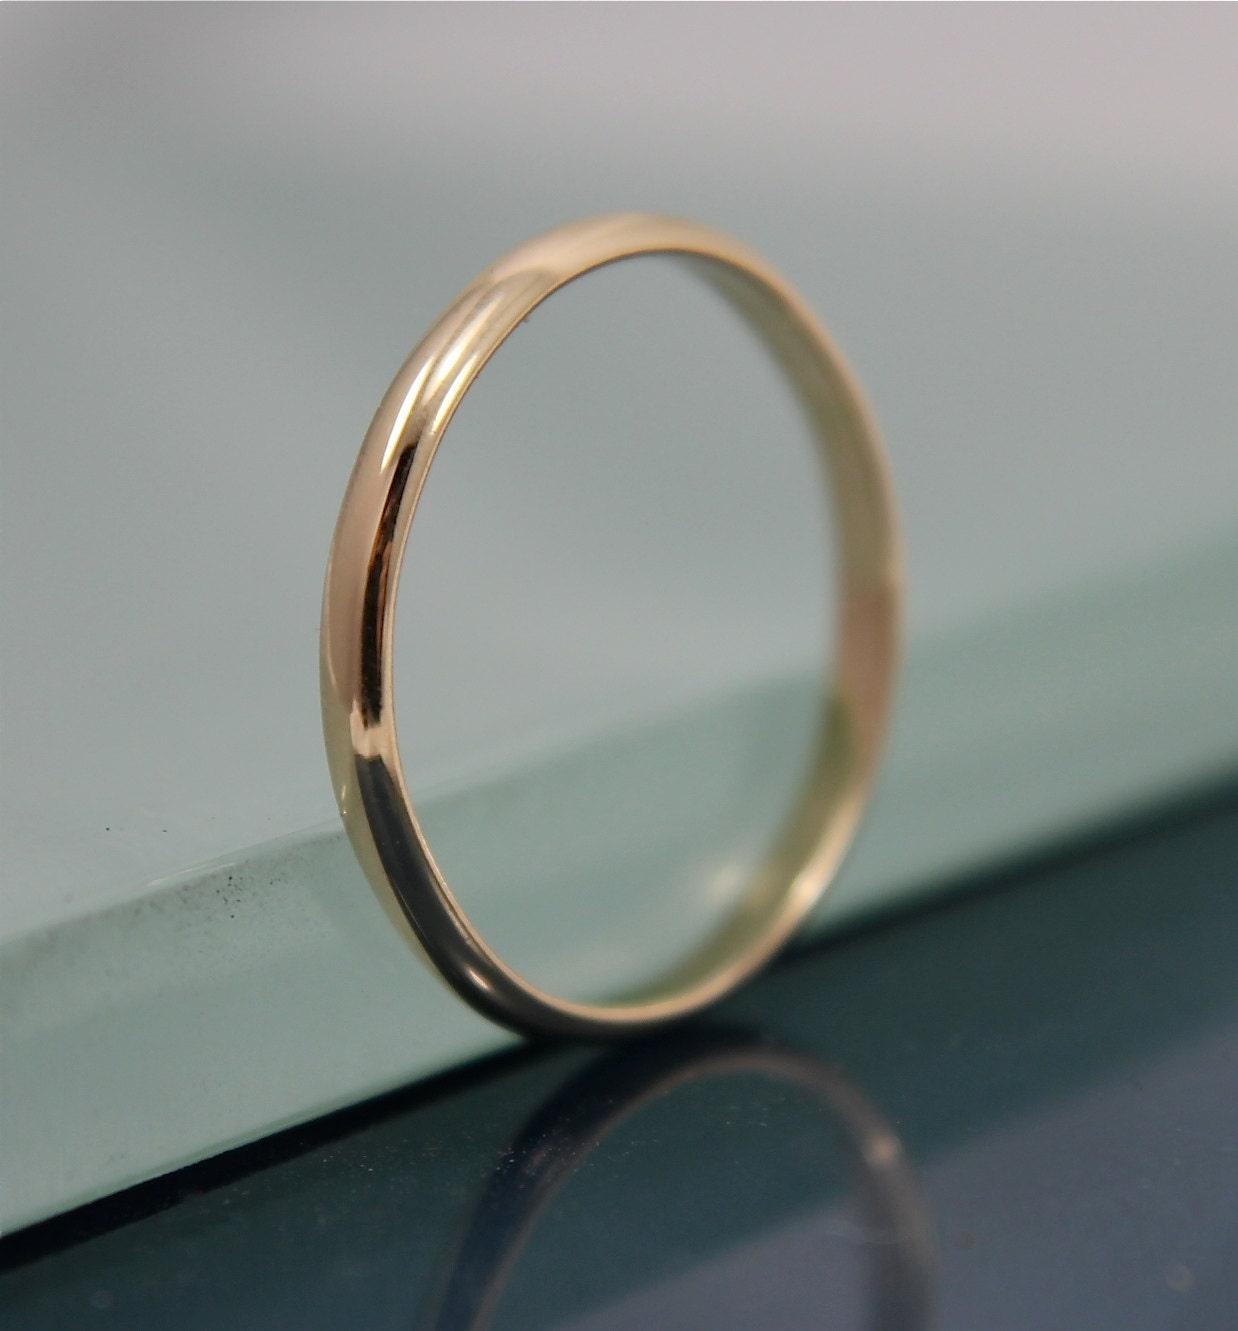 14k Yellow Gold High Polished 2mm Traditional Milgrain: 14k Wedding Band Half Round Solid Gold 2mm X 1mm Stacking Ring